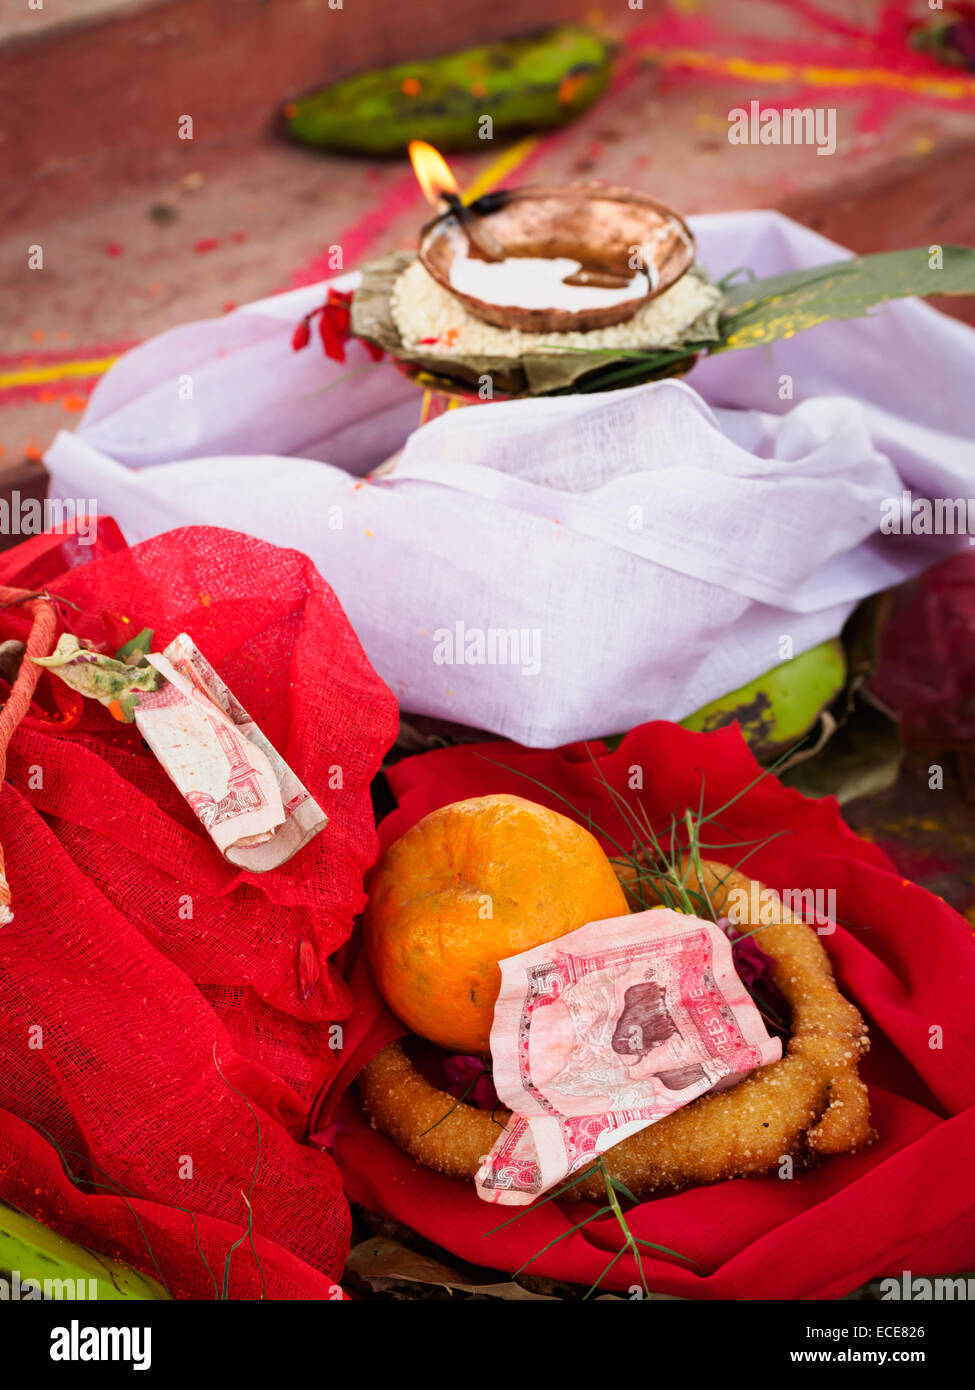 Offerings on the central altar at a Hindu wedding in Nepal Stock Photo